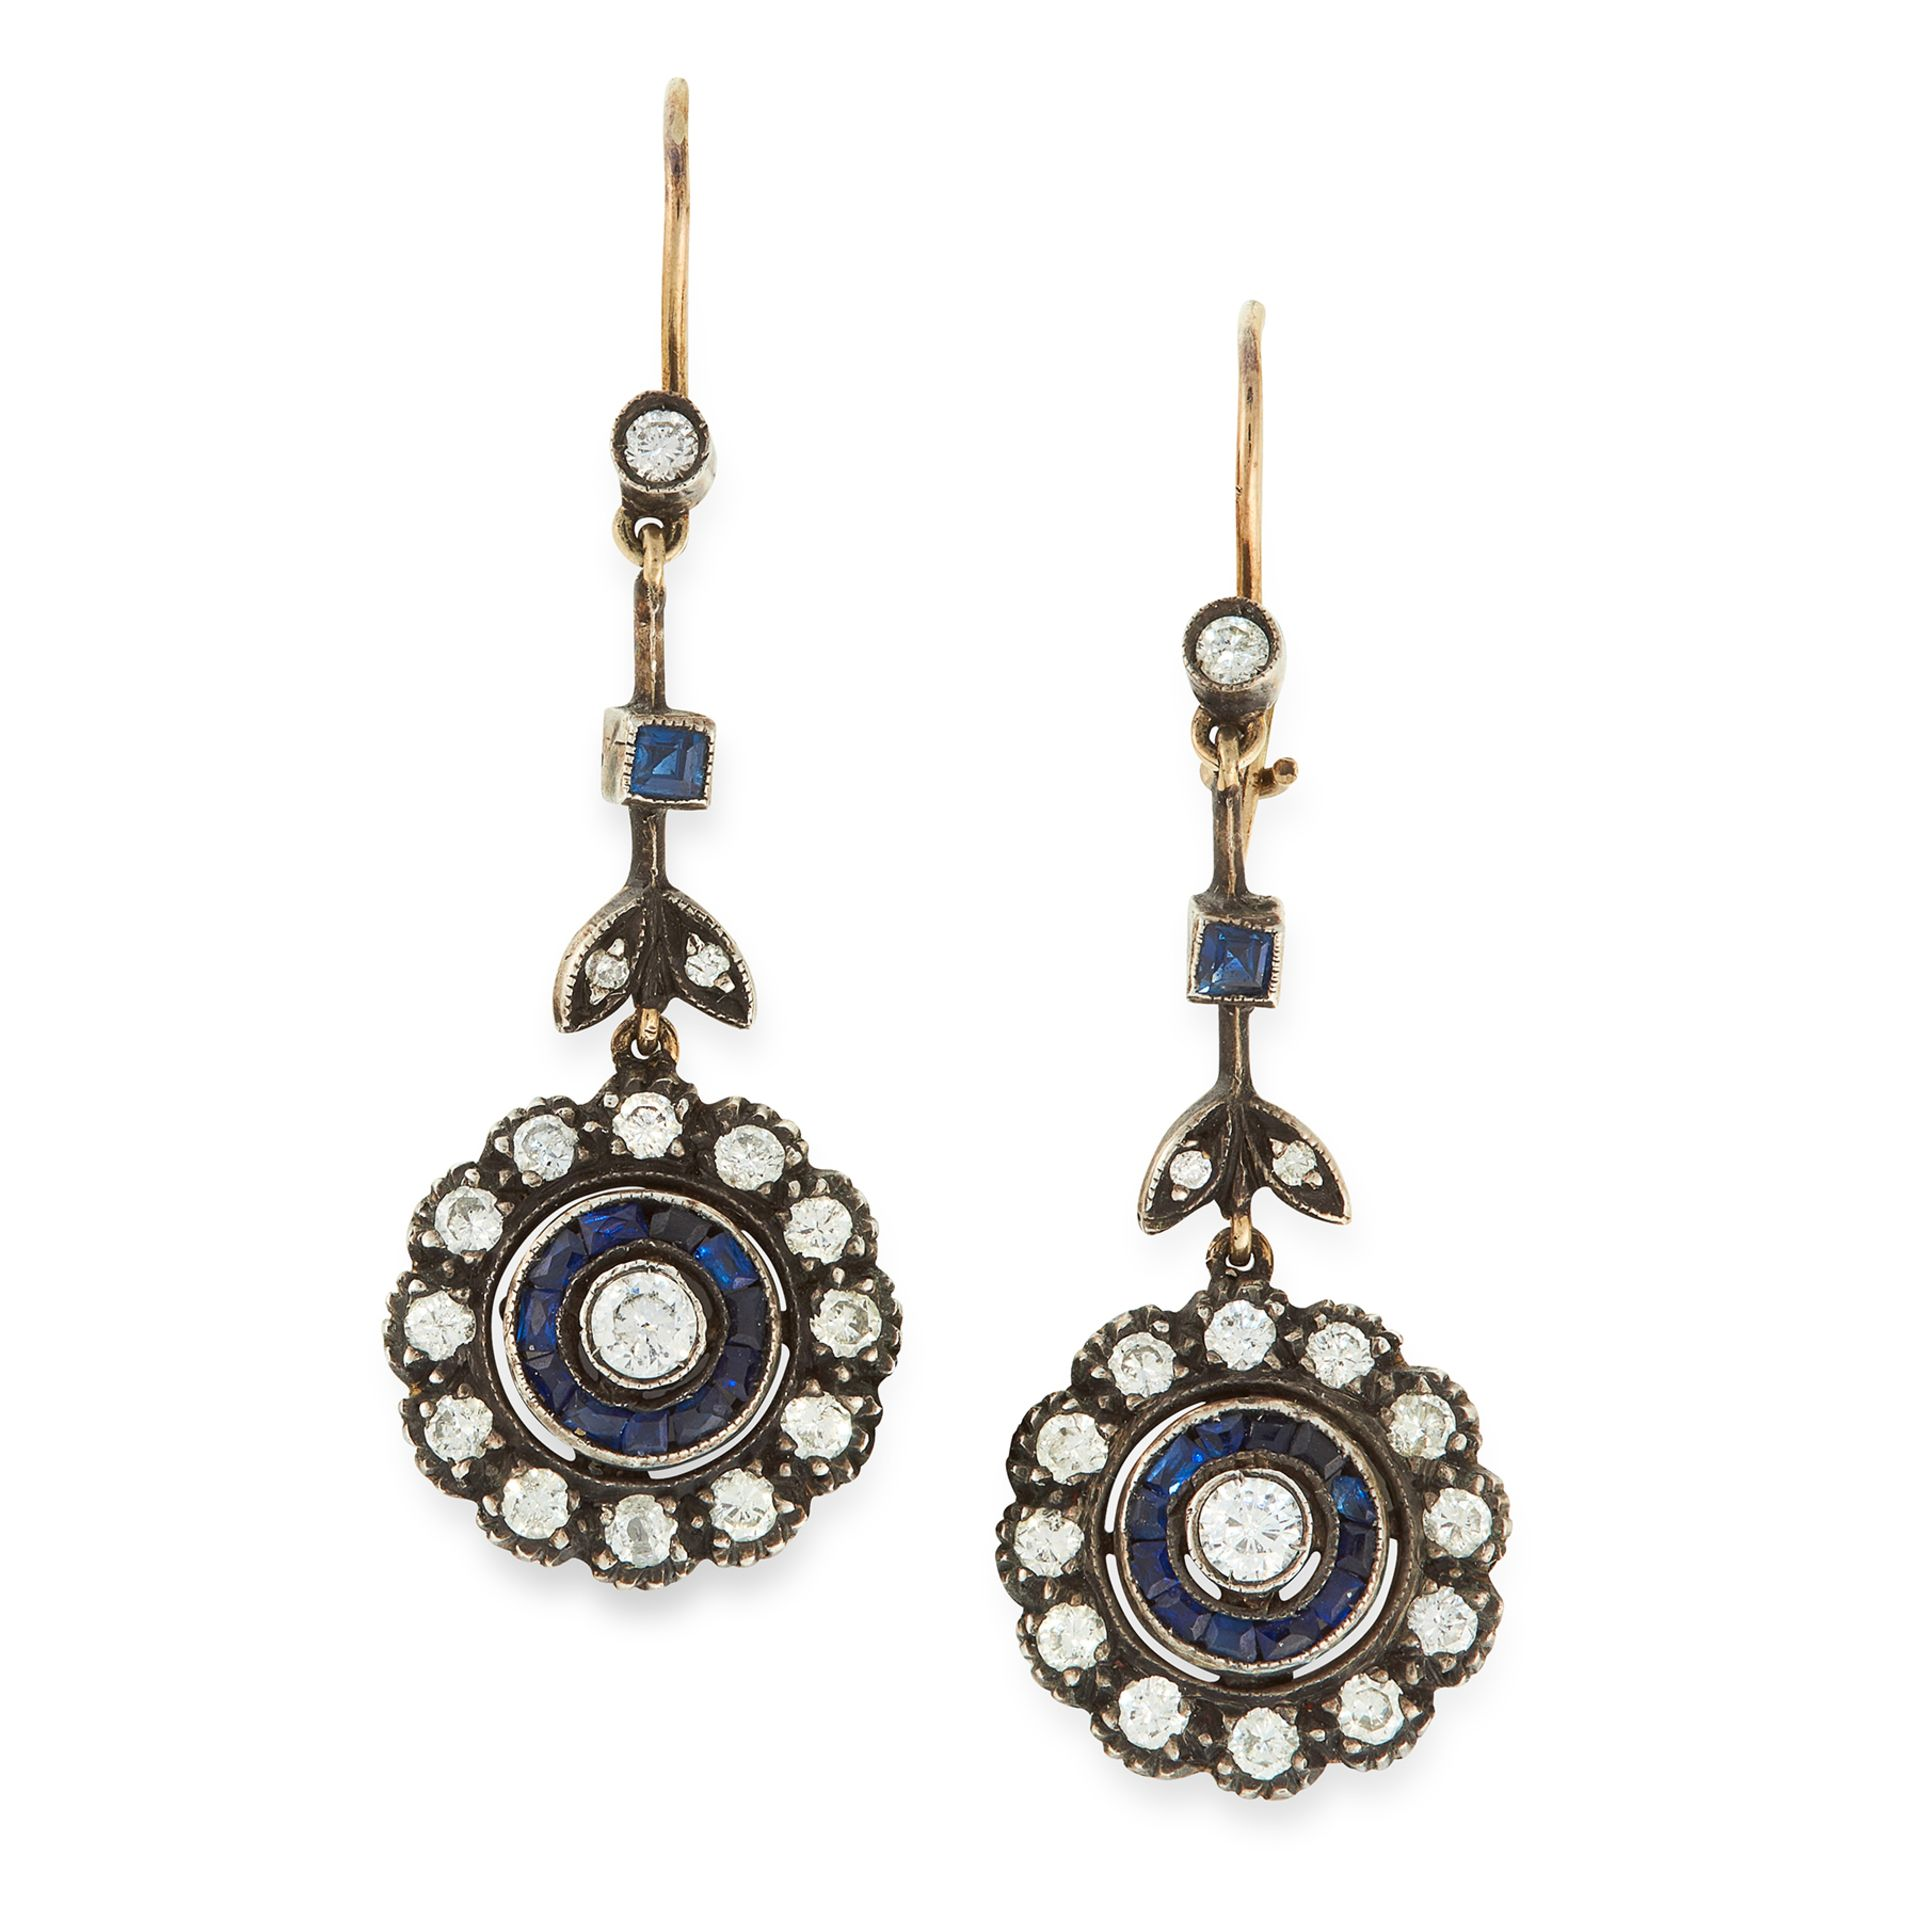 A PAIR OF DIAMOND AND SAPPHIRE DROP EARRINGS in yellow gold and silver, each set with a round cut